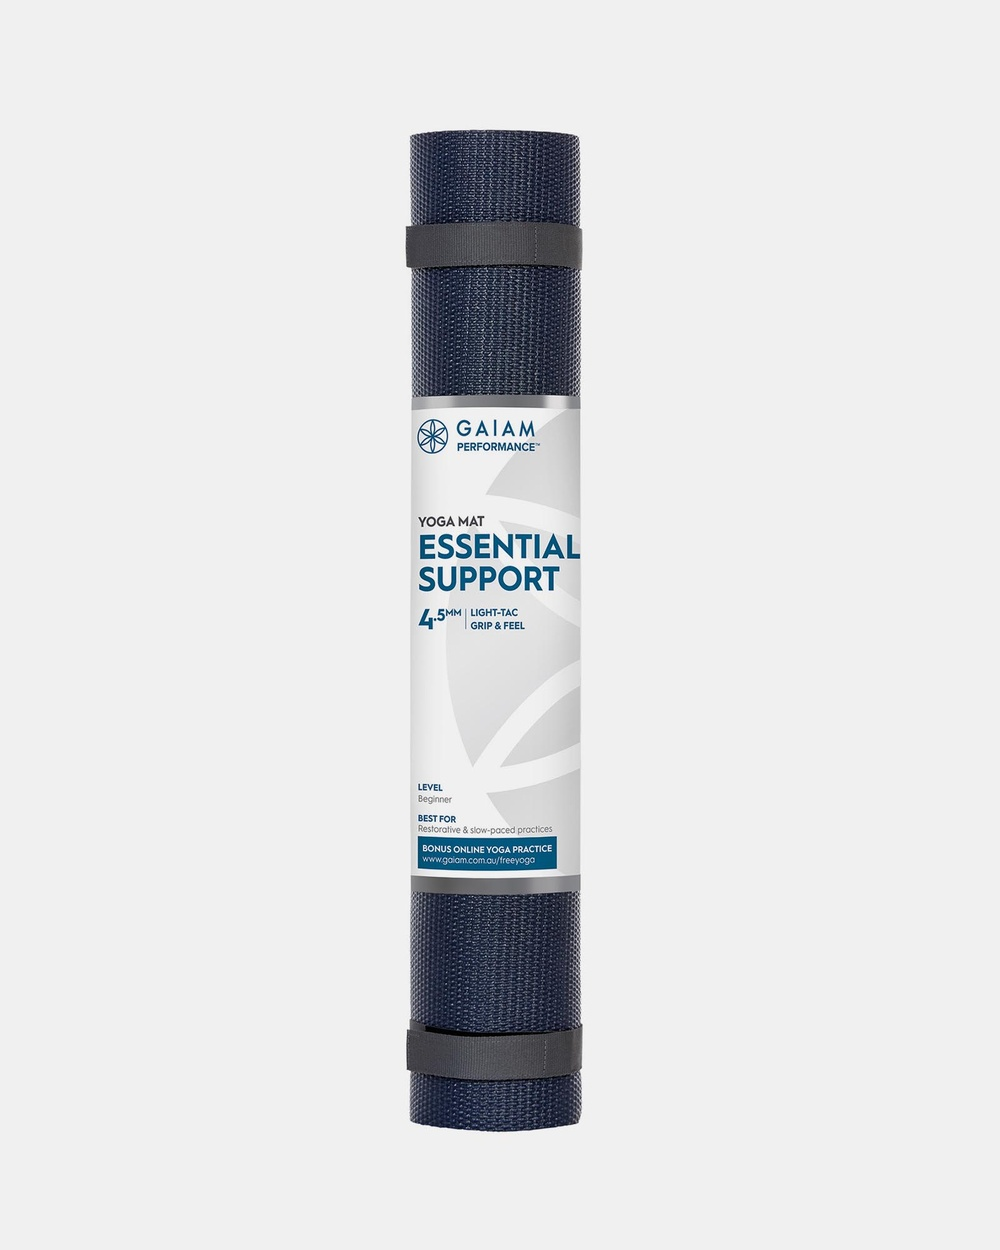 Gaiam Performance Essential Support 4.5mm Yoga Mat Accessories Navy & Teal